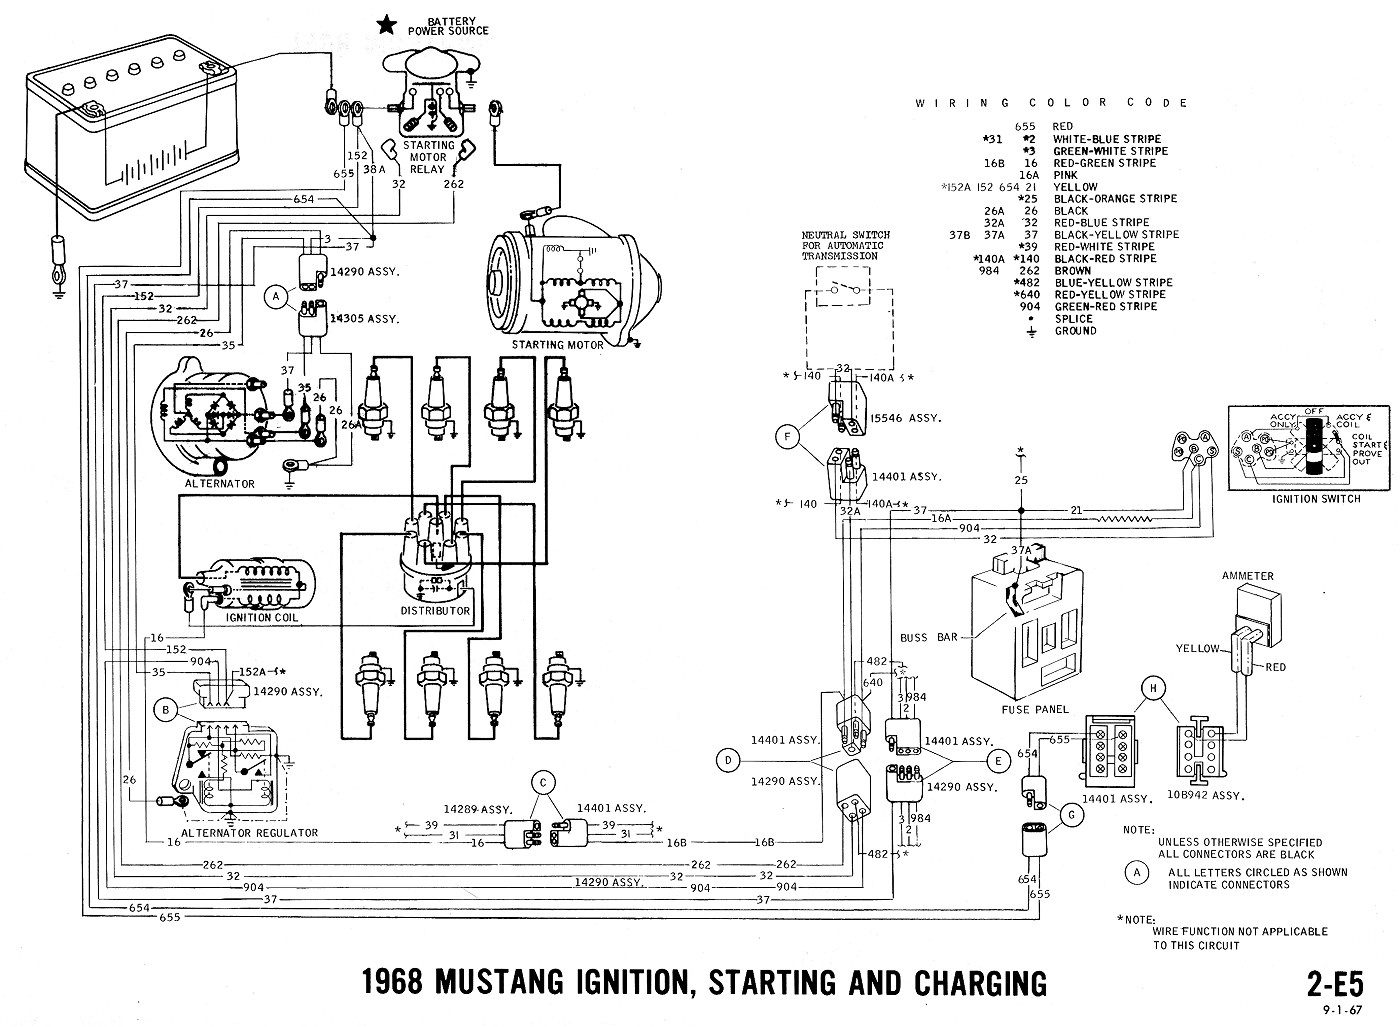 Ford Falcon Ignition Wiring Diagram - All Wiring Diagram